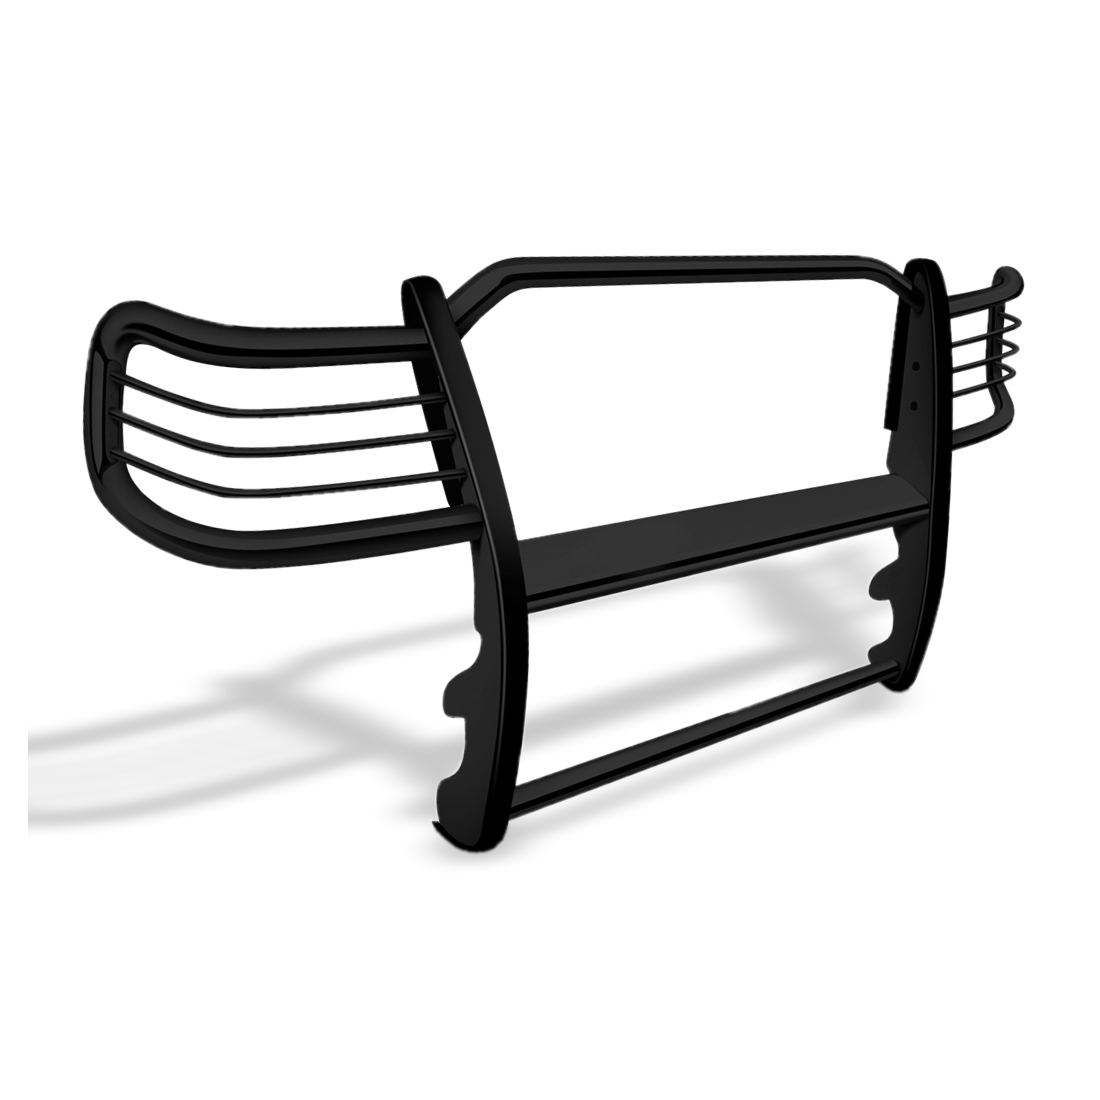 Broadfeet Full Grille Guard for 2004-2006 Dodge Durango i...